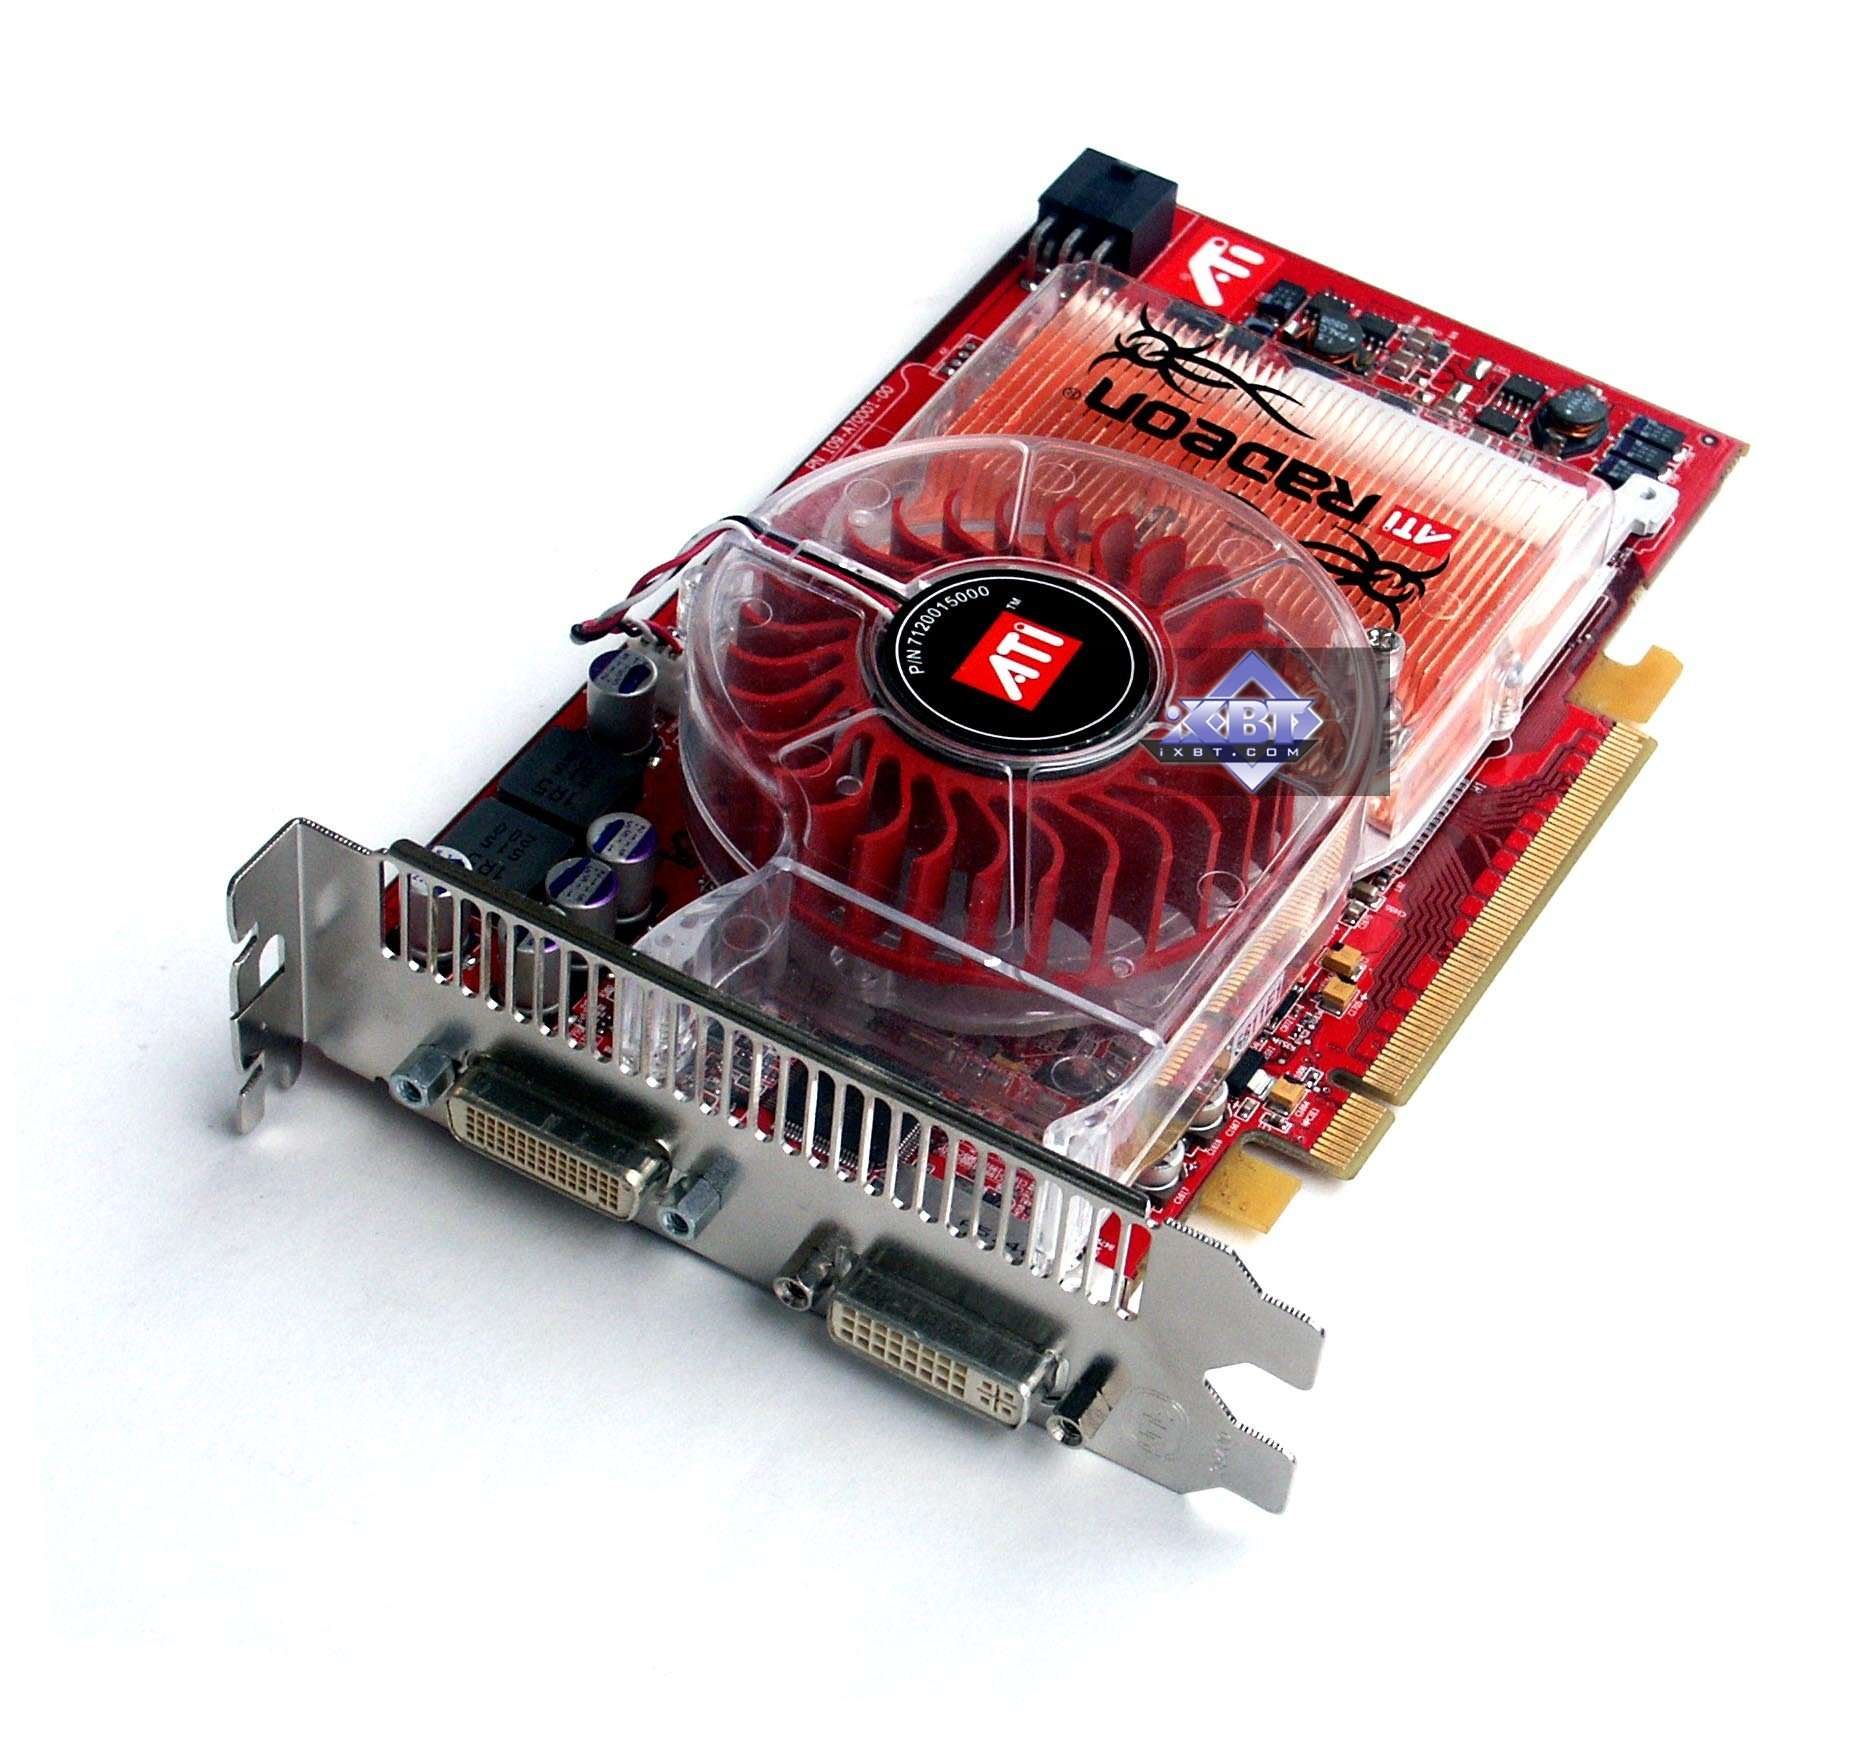 Ati crossfire: part 1. First 3d tests based on 2 x radeon x850 xt.